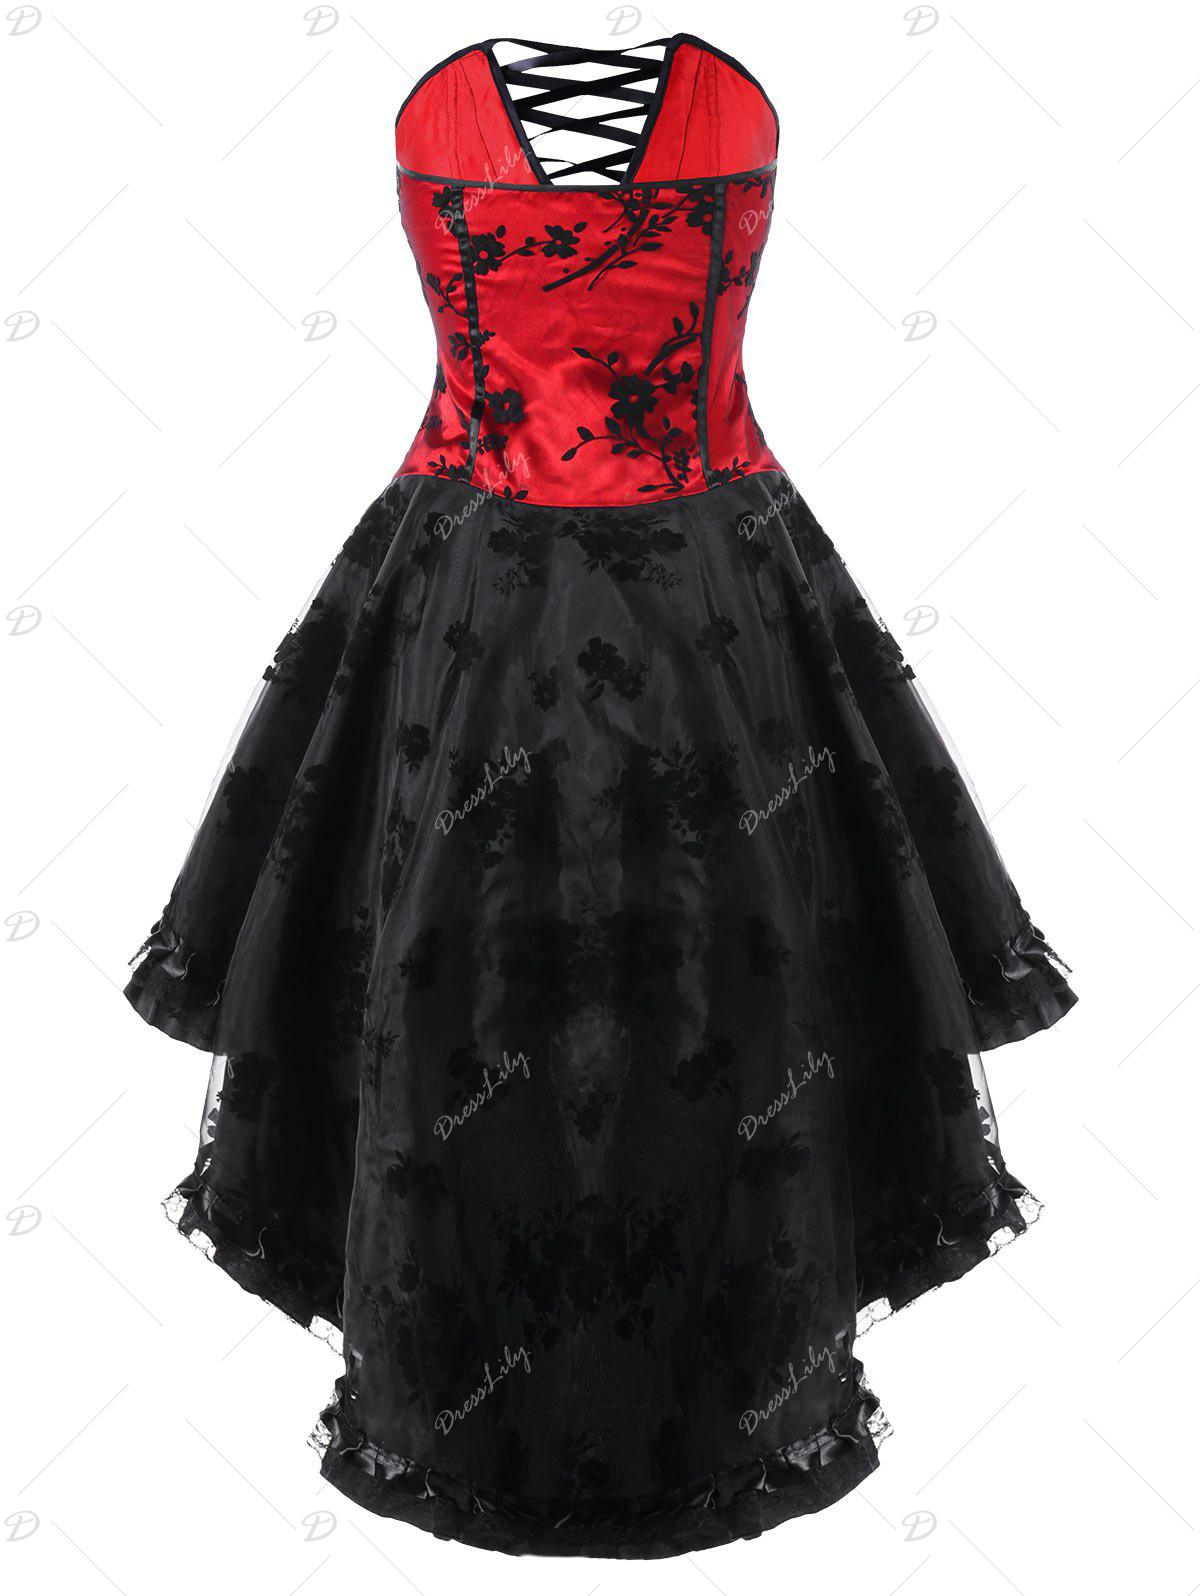 Lace Up High Low Hem Tube Corset Dress - RED/BLACK M